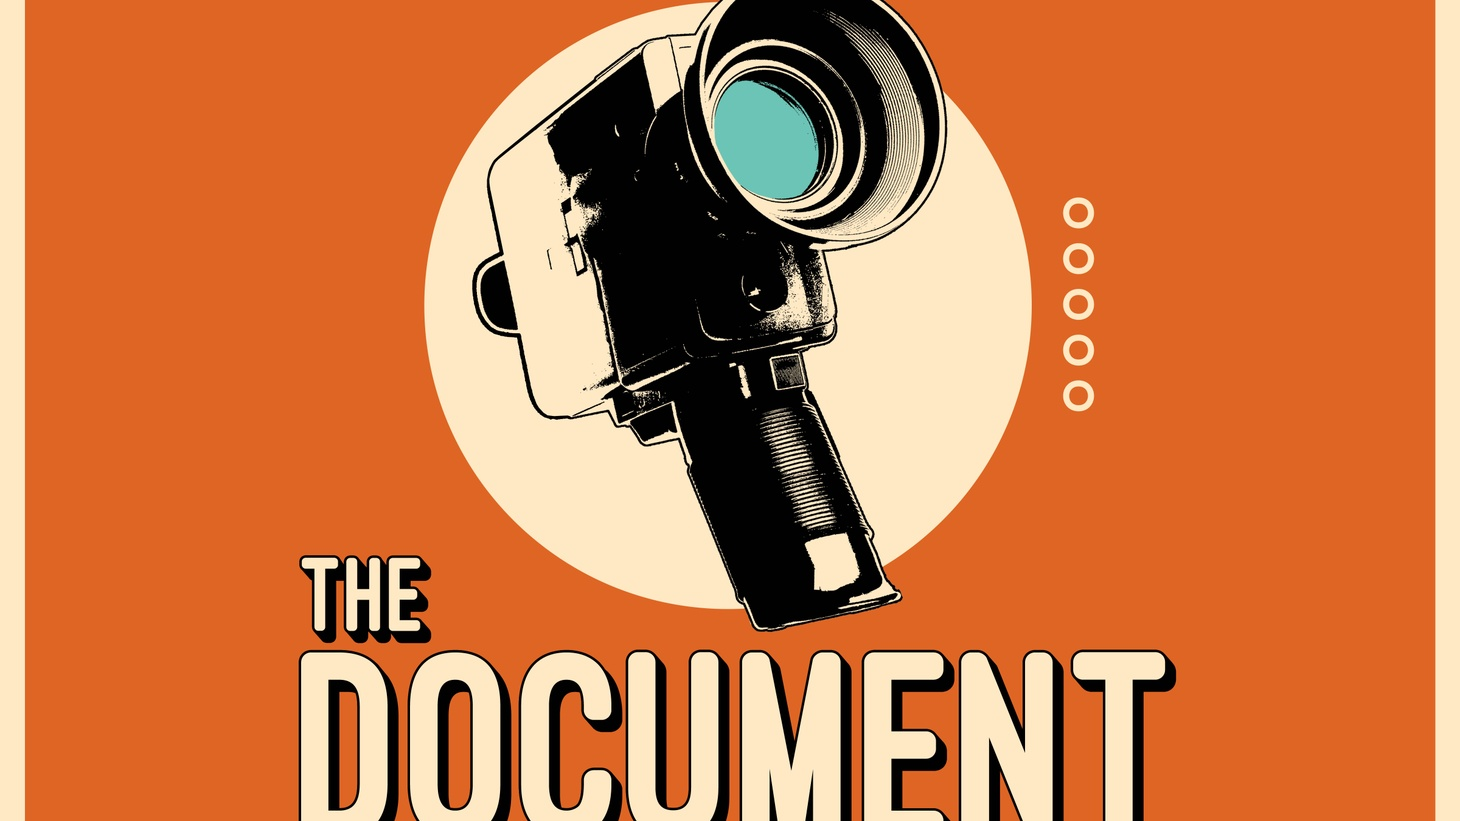 The Document is a new kind of mash-up between documentaries and radio. From creator Matt Holzman, it goes beyond clips and interviews, mining great stories from the raw footage of documentaries present, past and in-progress.